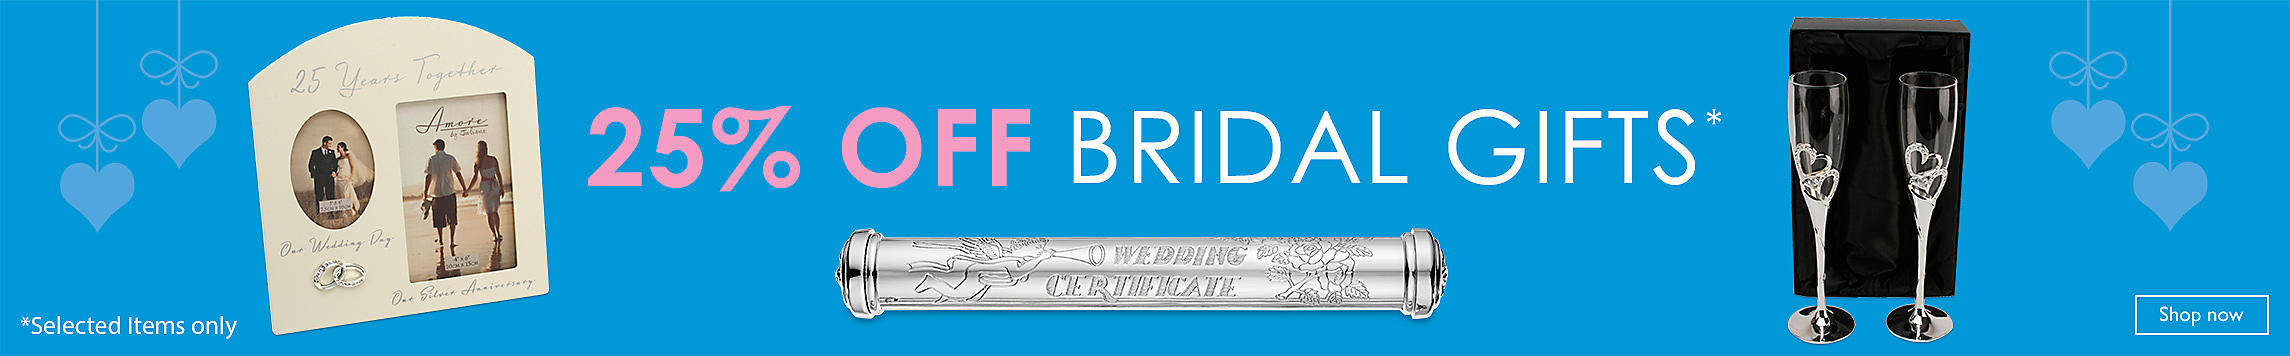 25% Off Bridal Gifts